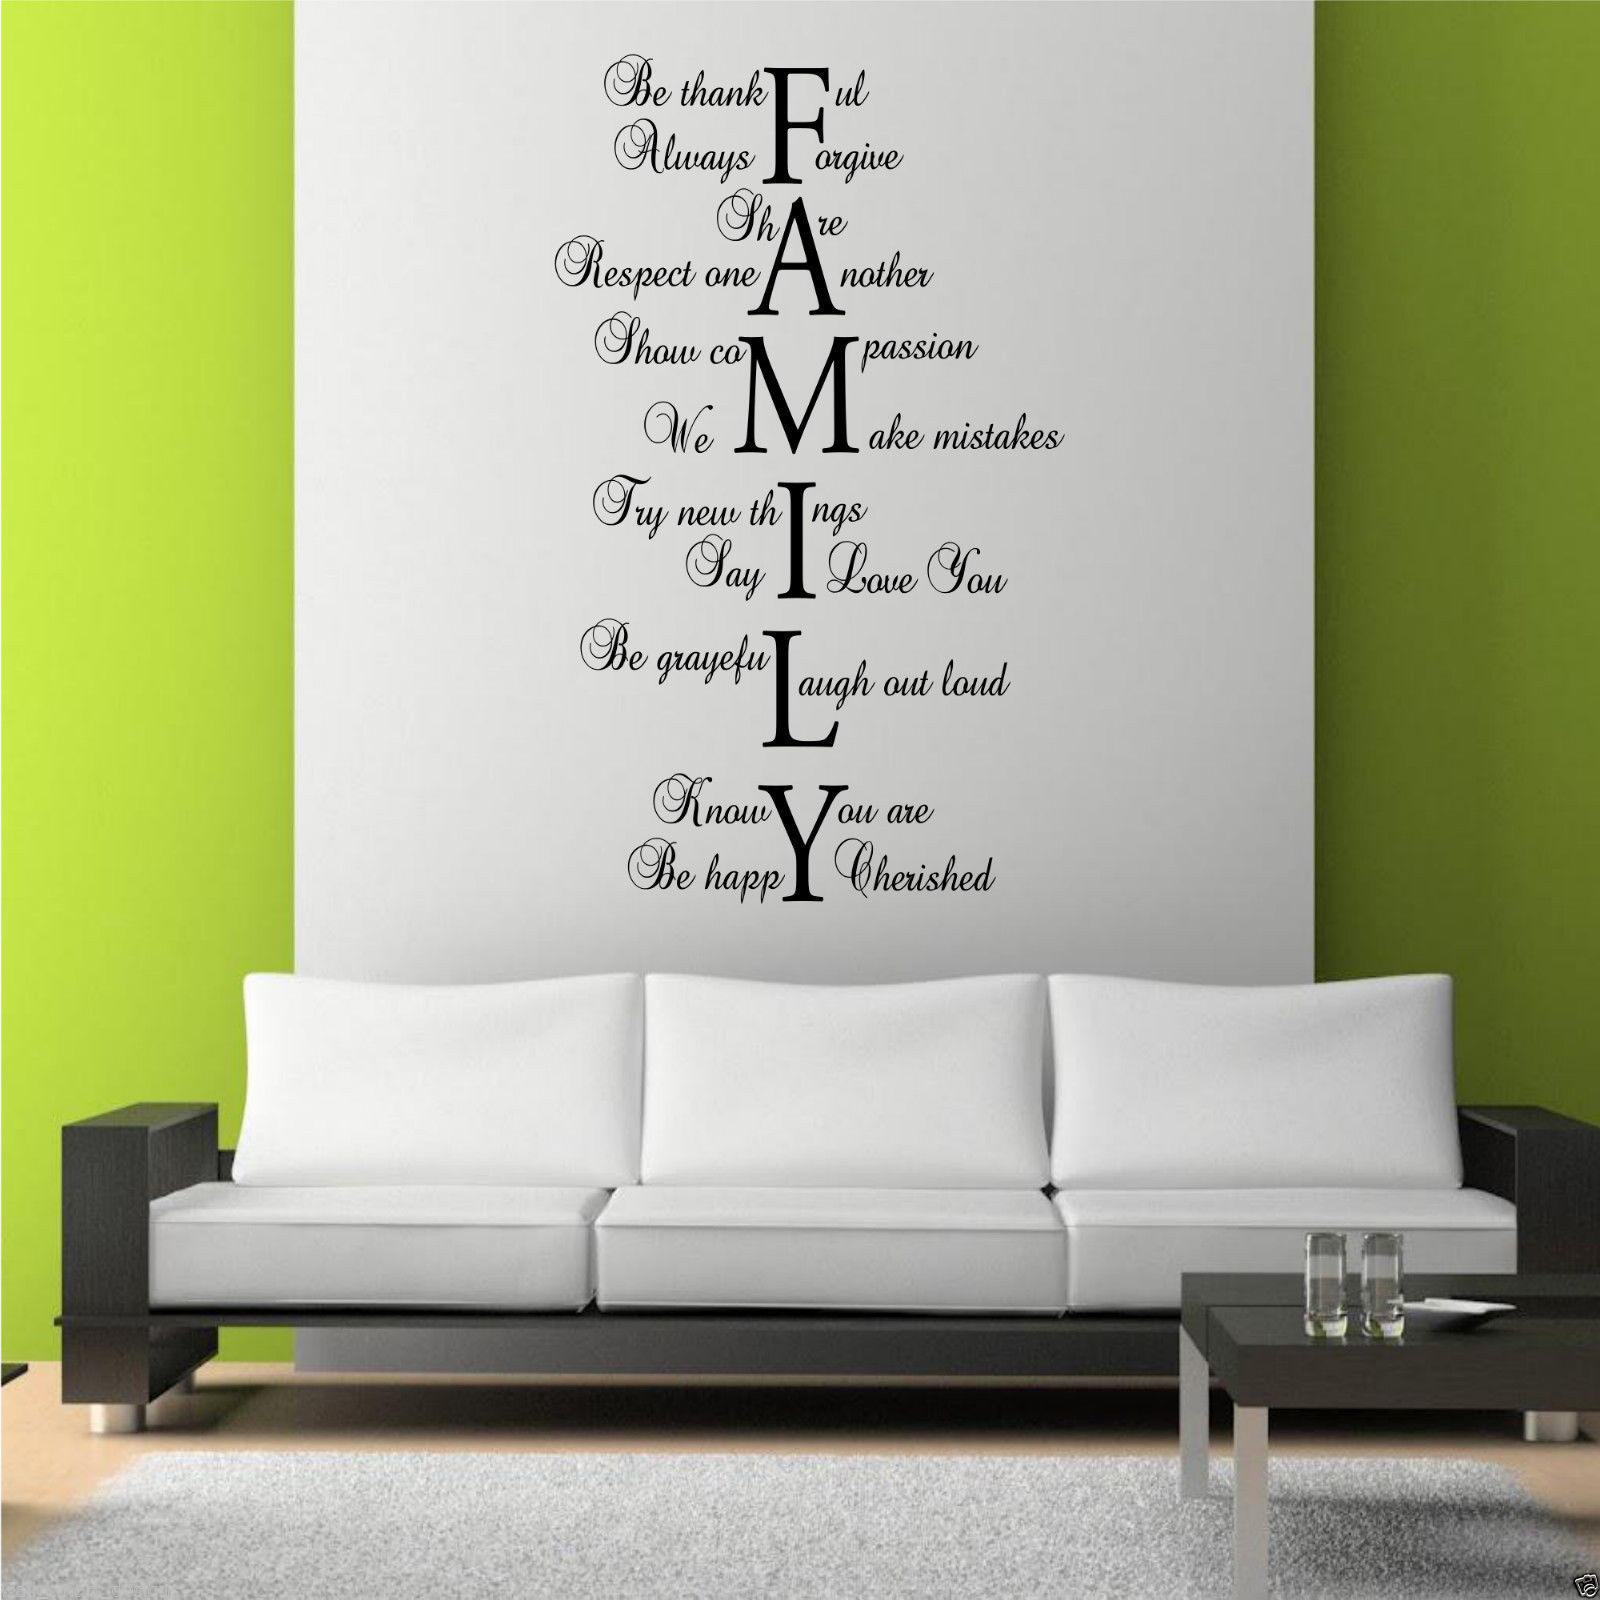 Family love life wall art sticker quote room decal mural for Family room wall art